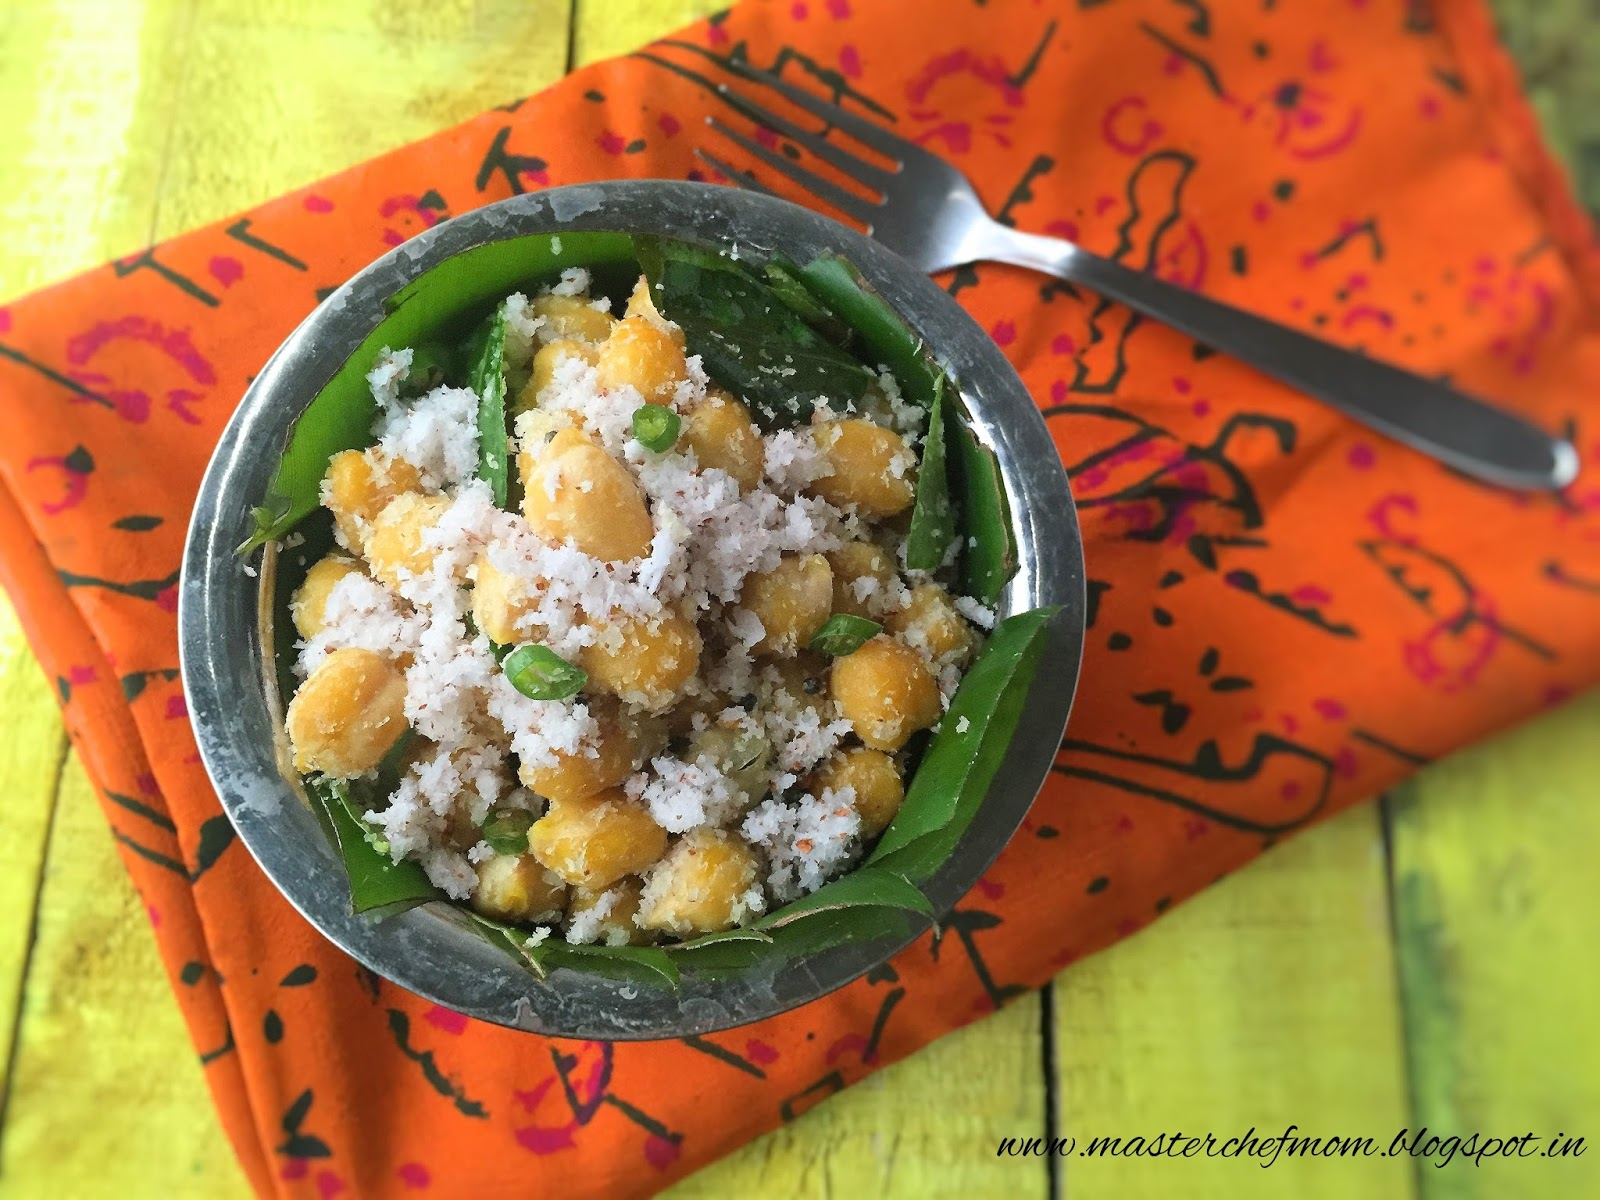 how to make vegetable salad in tamil